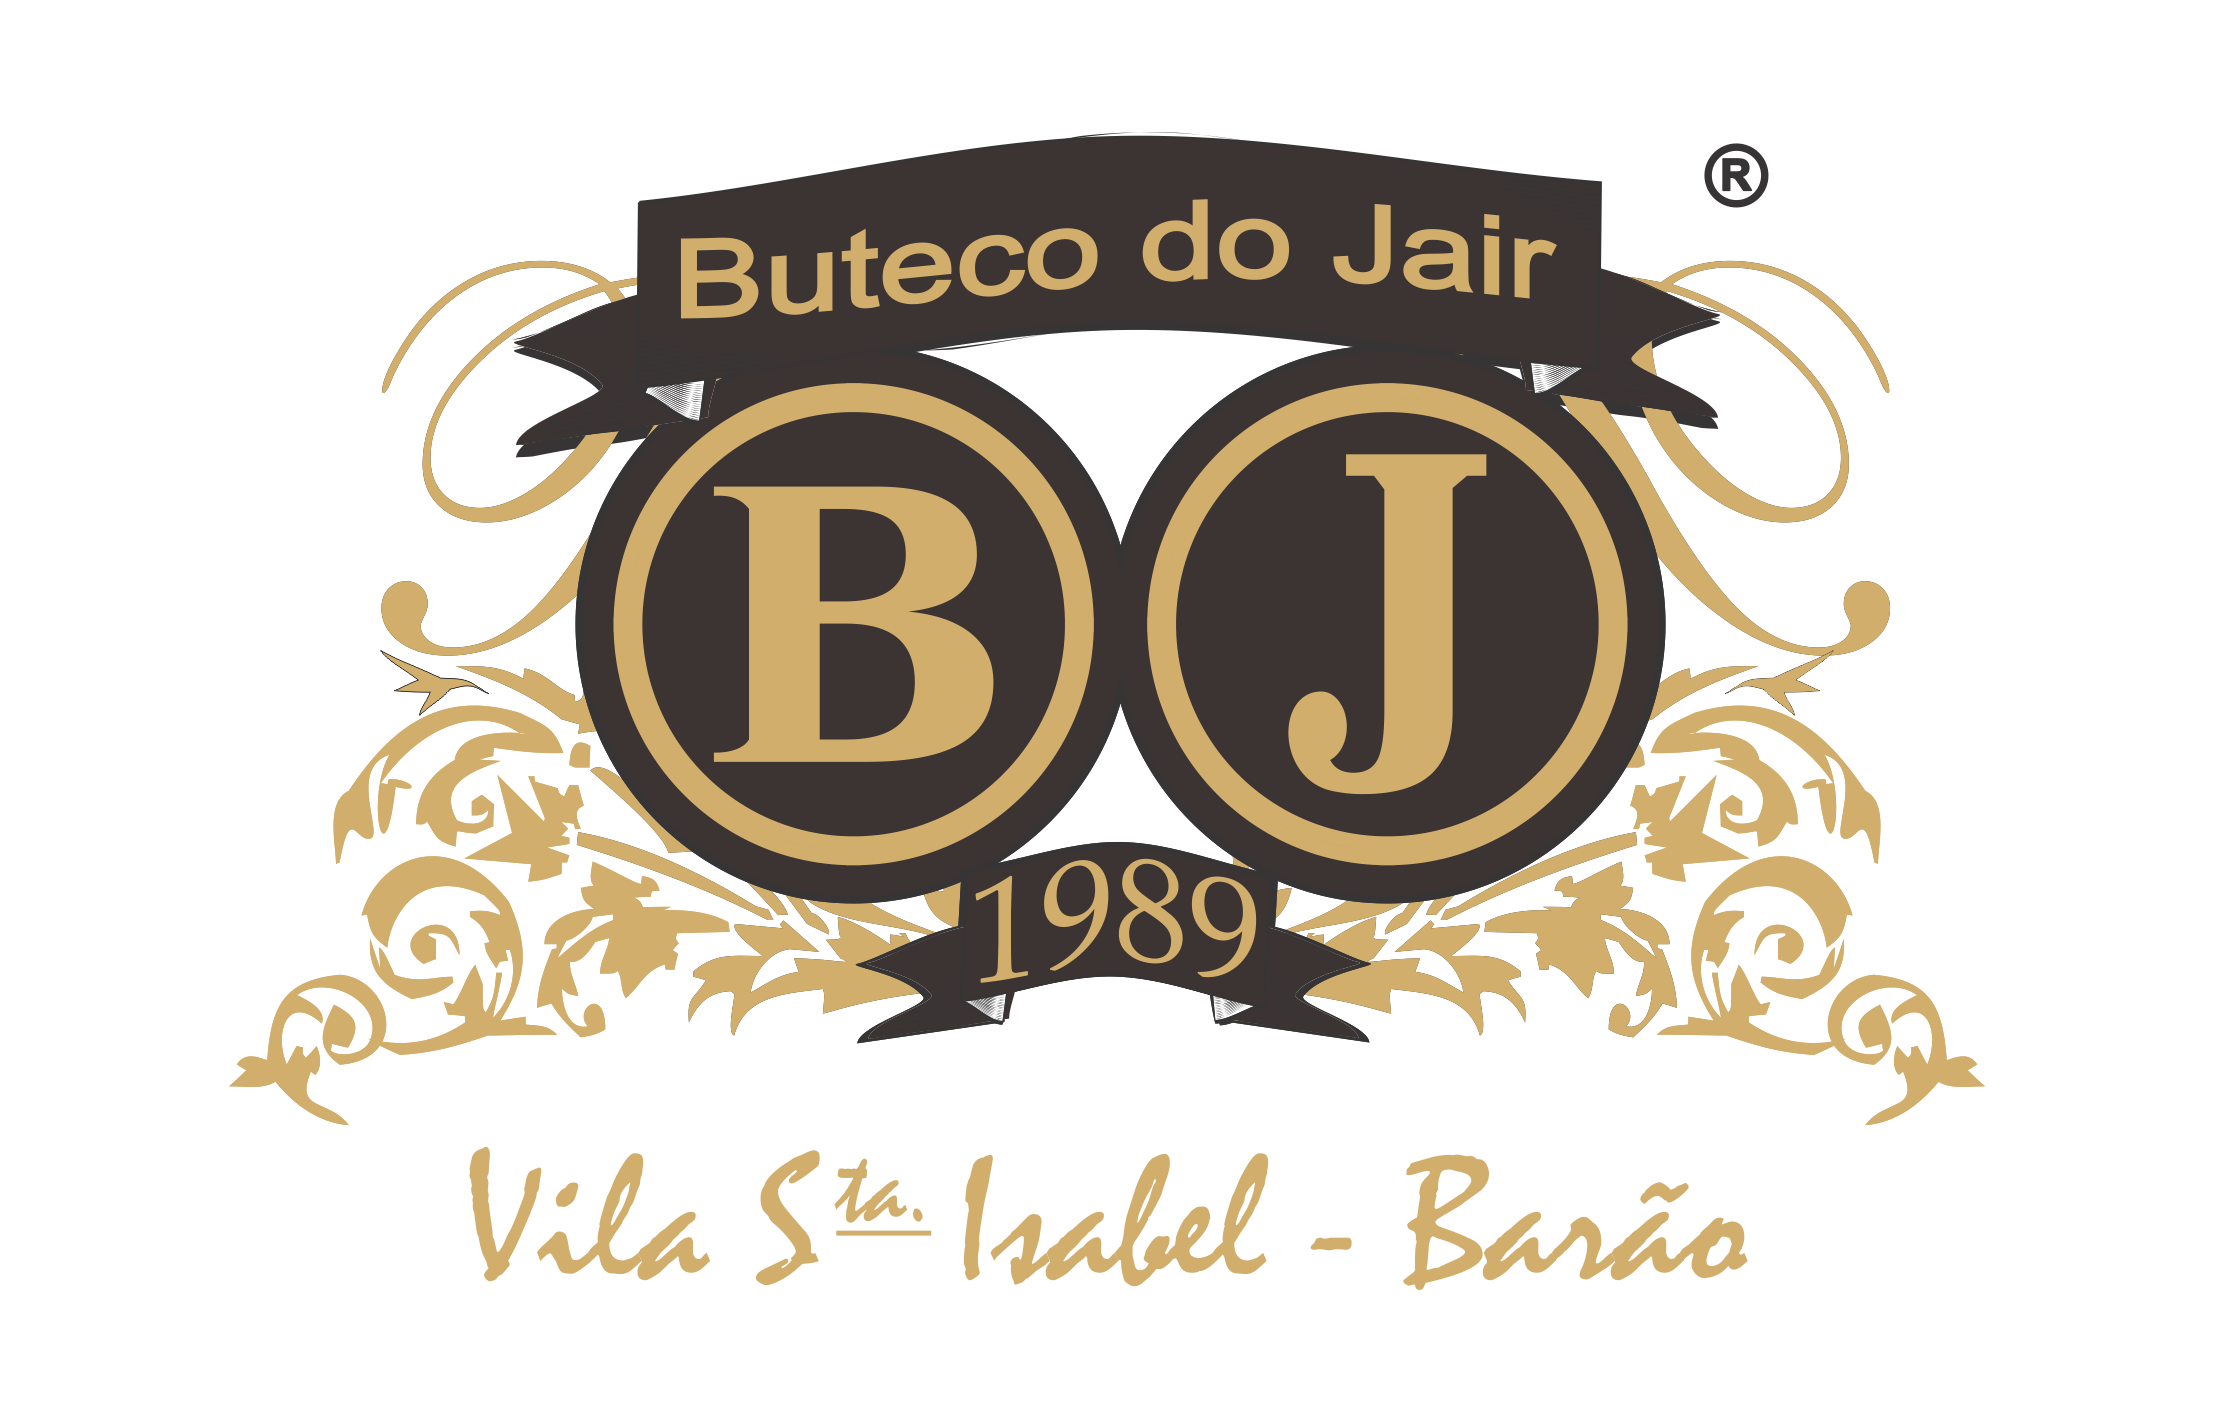 Buteco do Jair